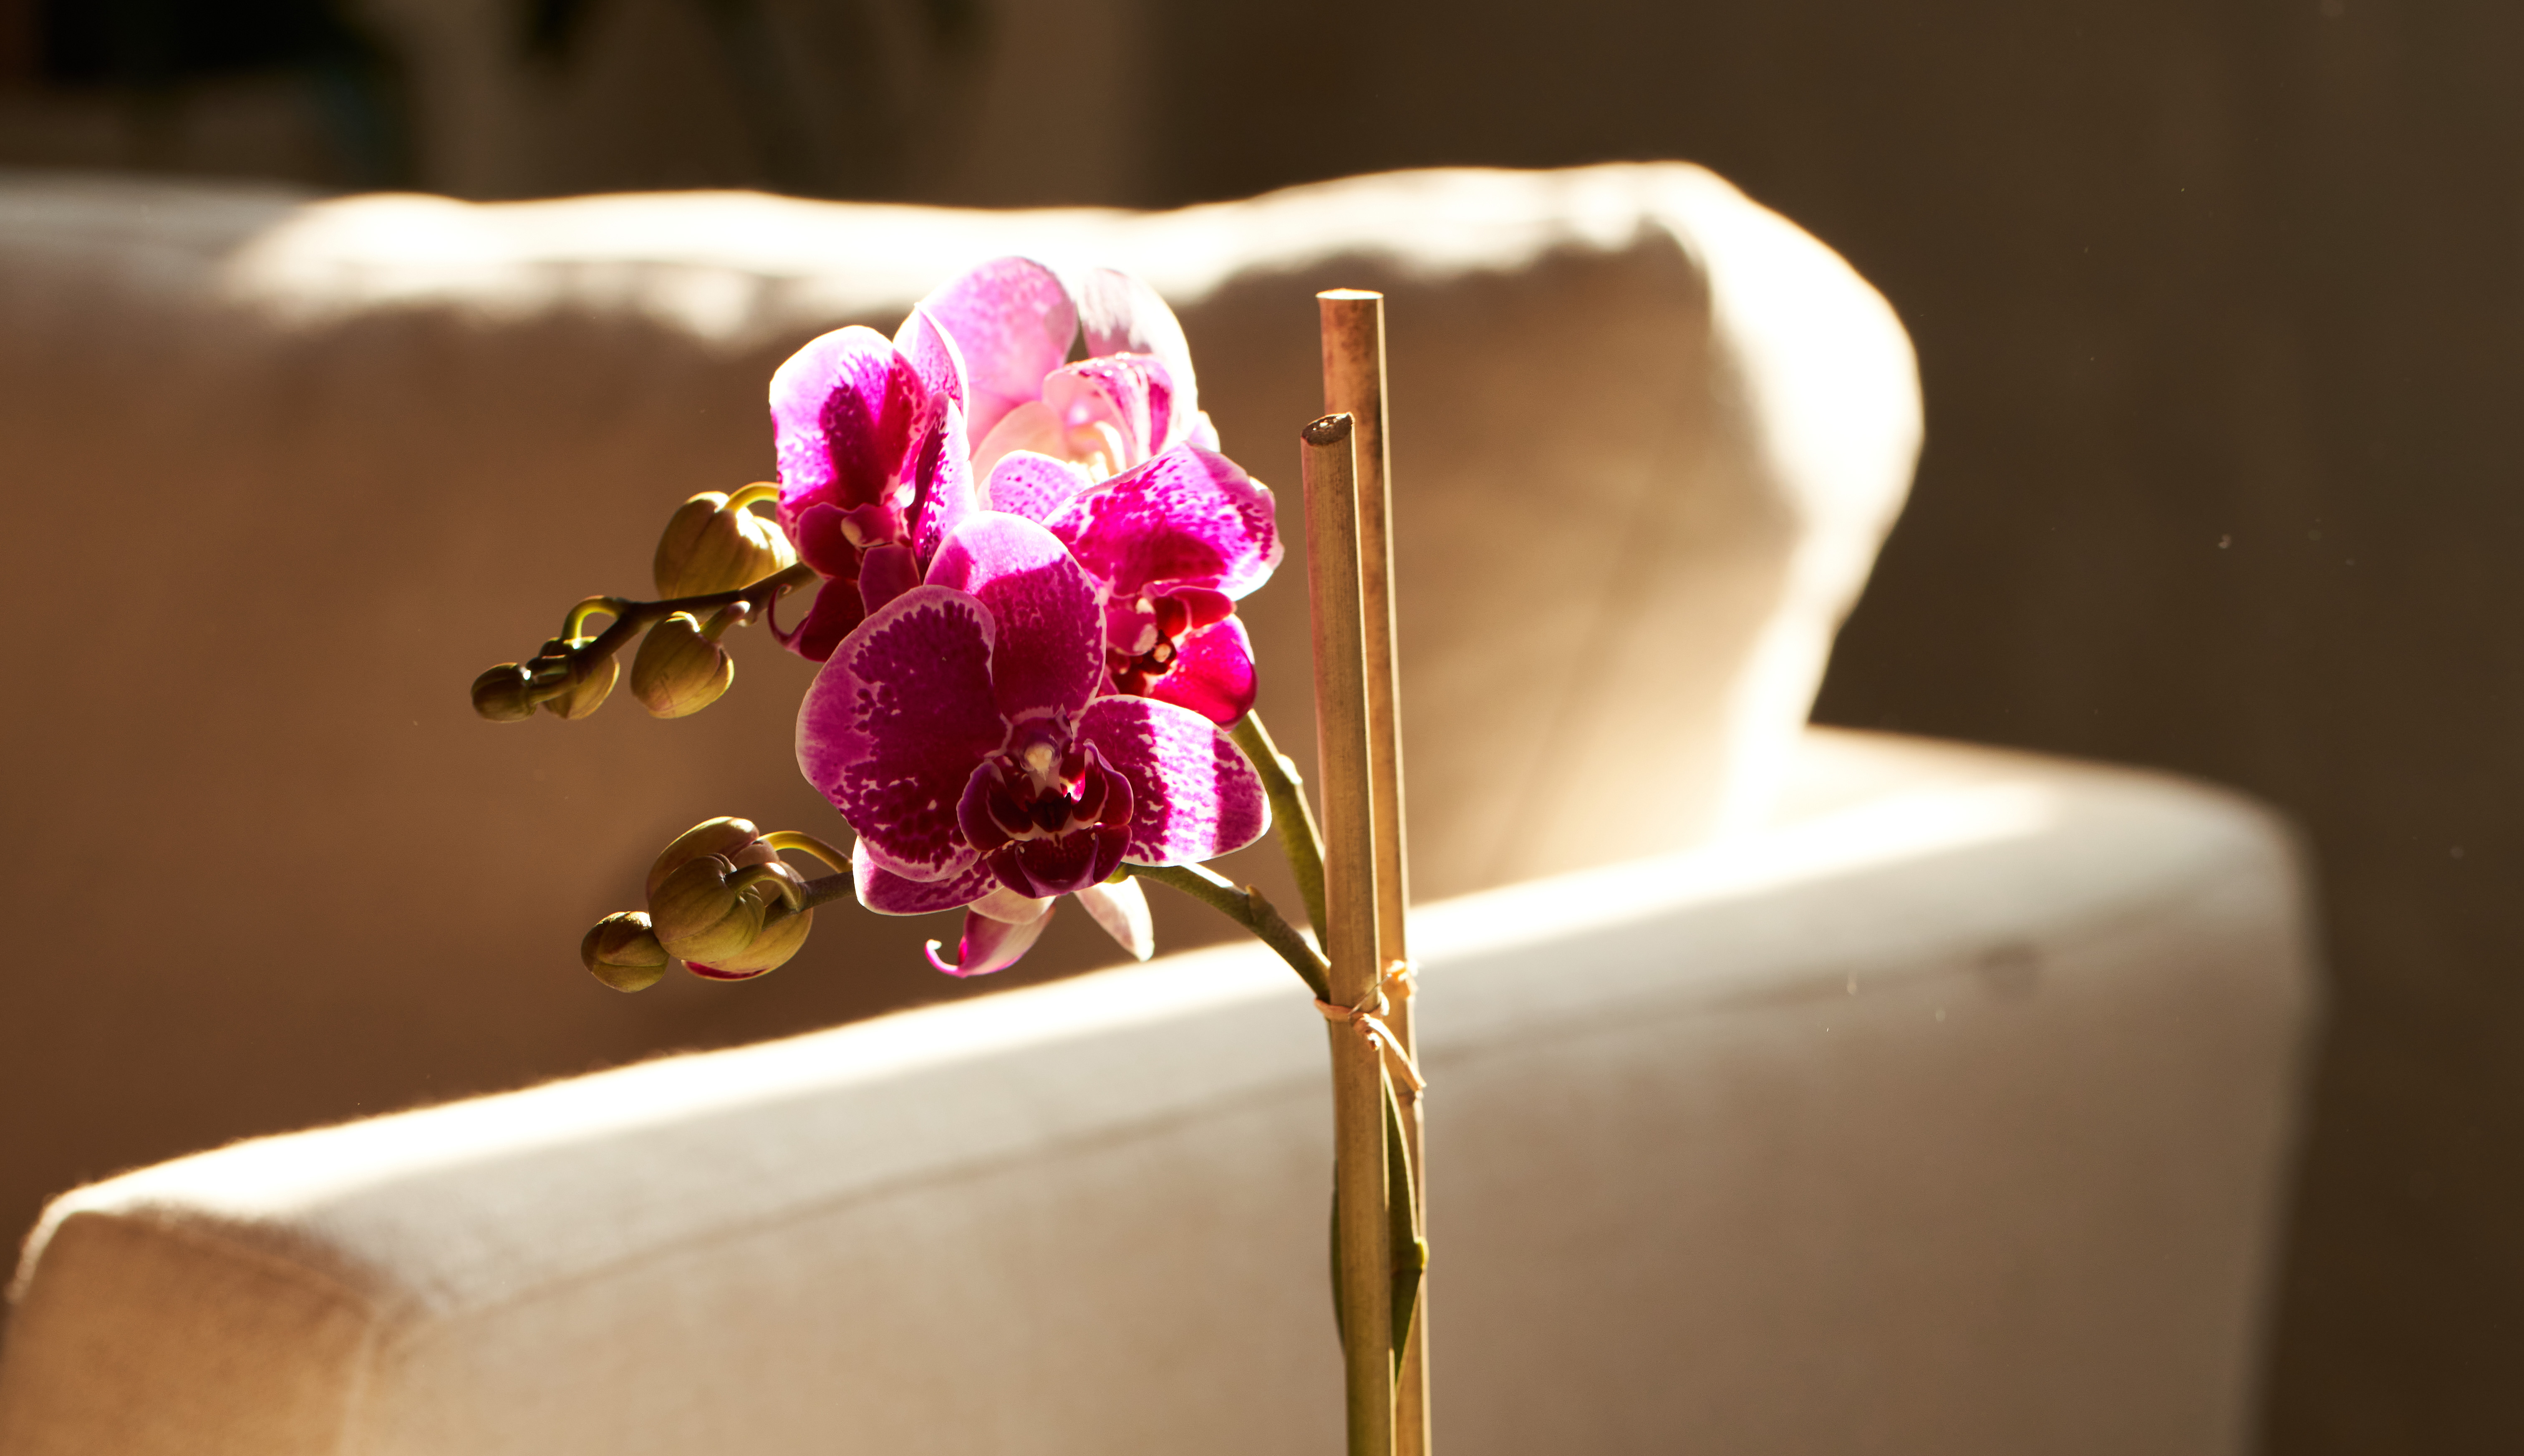 Close up image of a purple orchid plant.